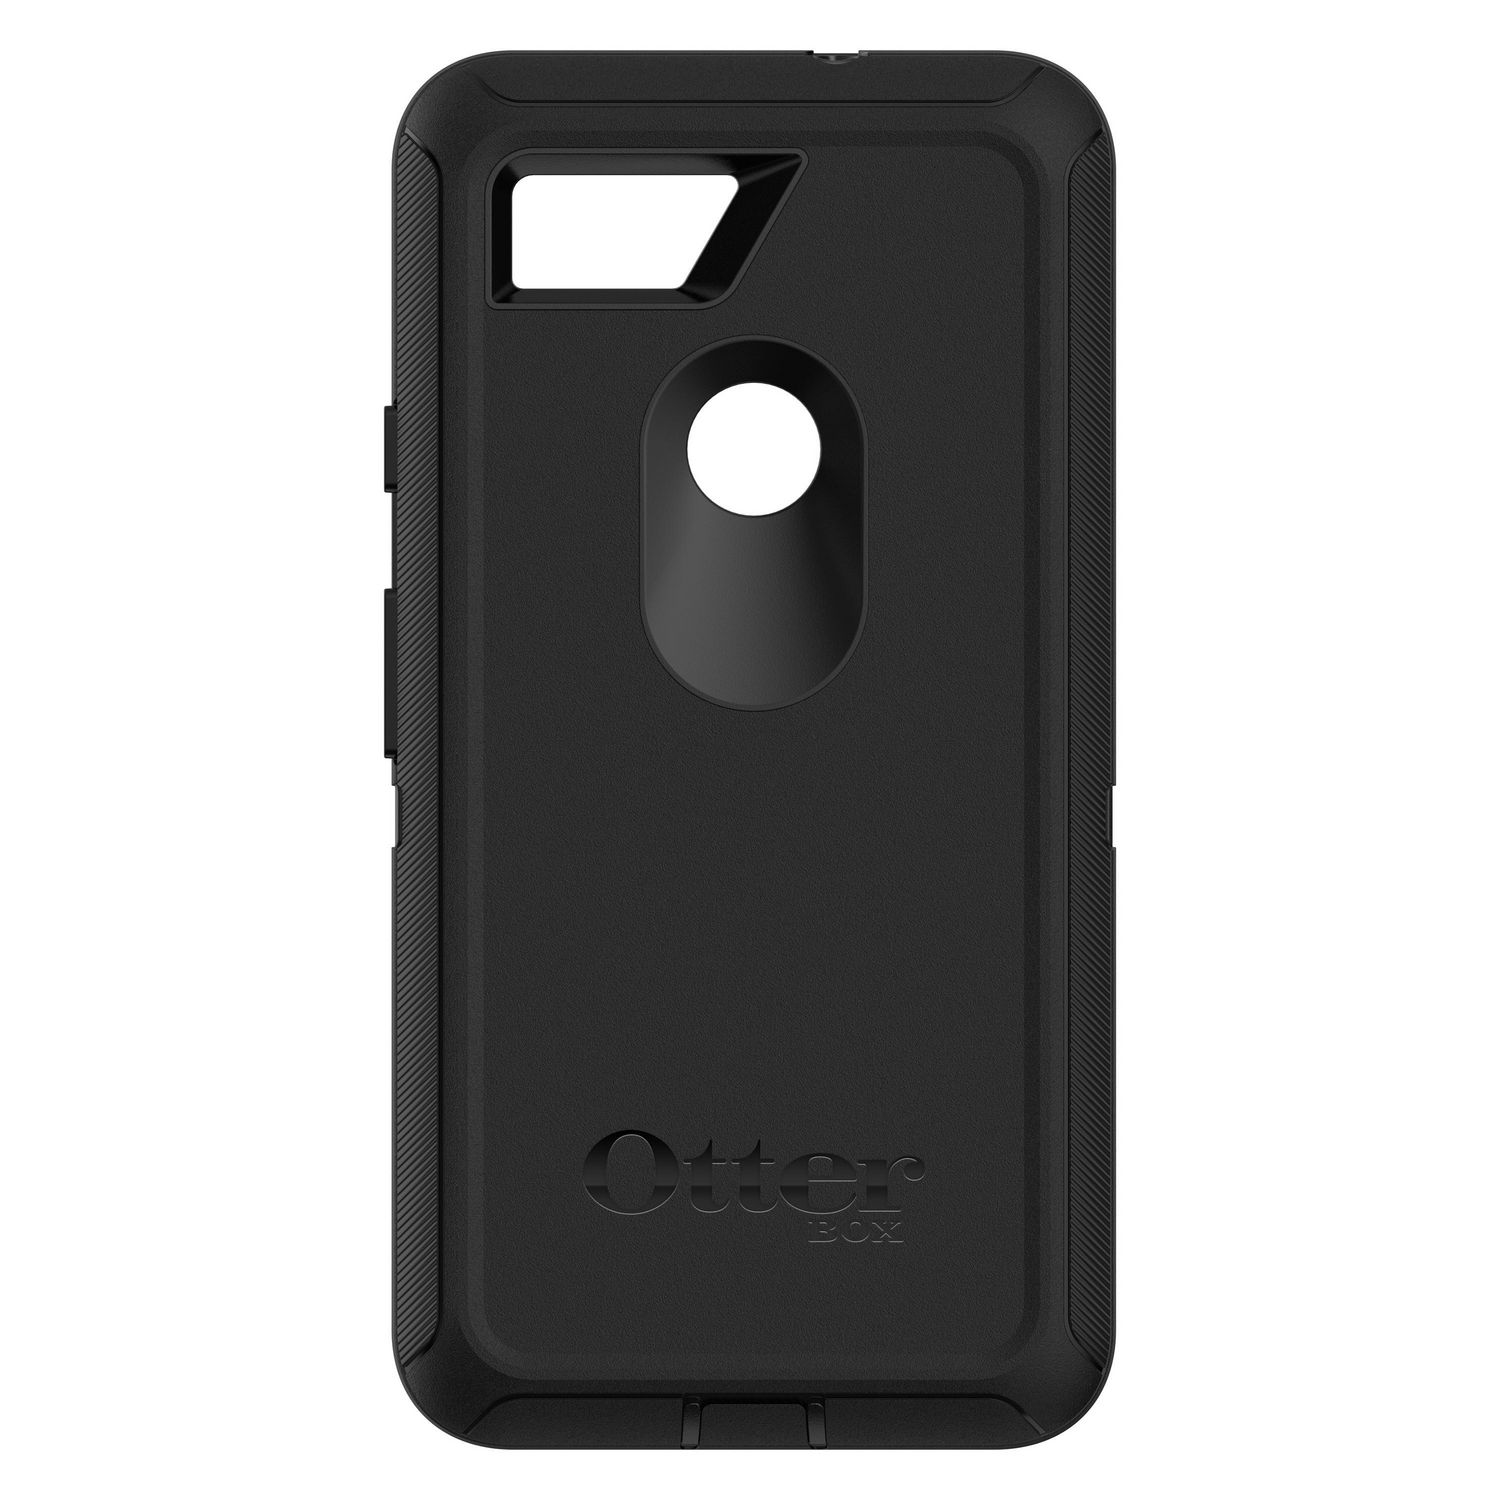 outlet store 13fa5 255a0 Otterbox Defender Case for Google Pixel 2 XL